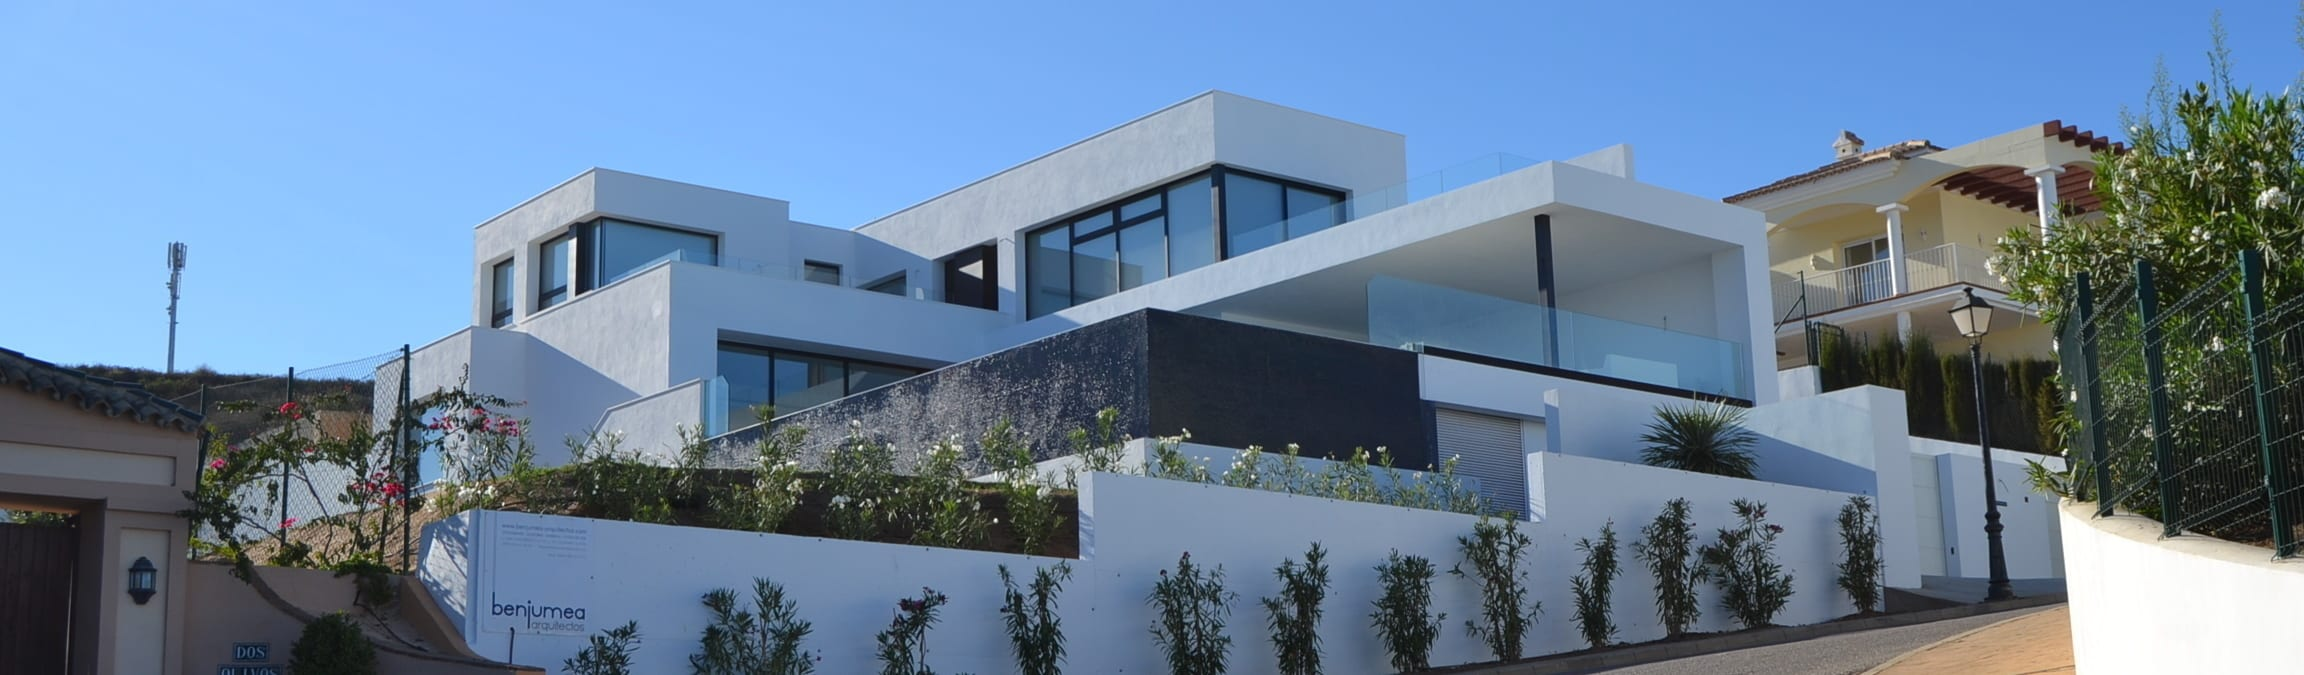 Benjumea arquitectos architects in sotogrande homify for Arquitecto sotogrande